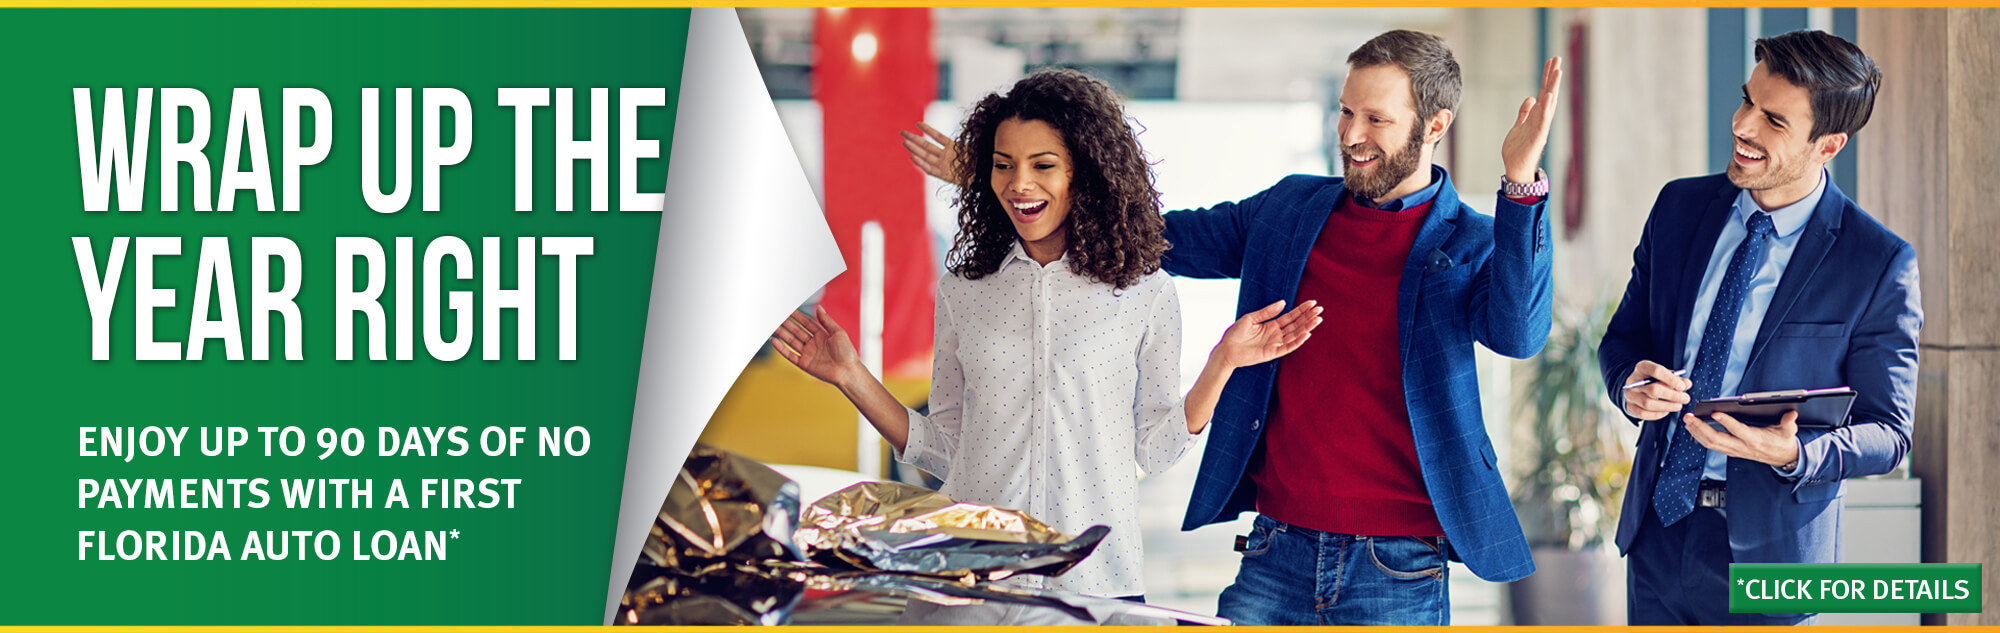 Wrap up the year right with a First Florida Auto Loan. Enjoy up to 90 days of no payments with a First Florida Auto Loan. Click for details.